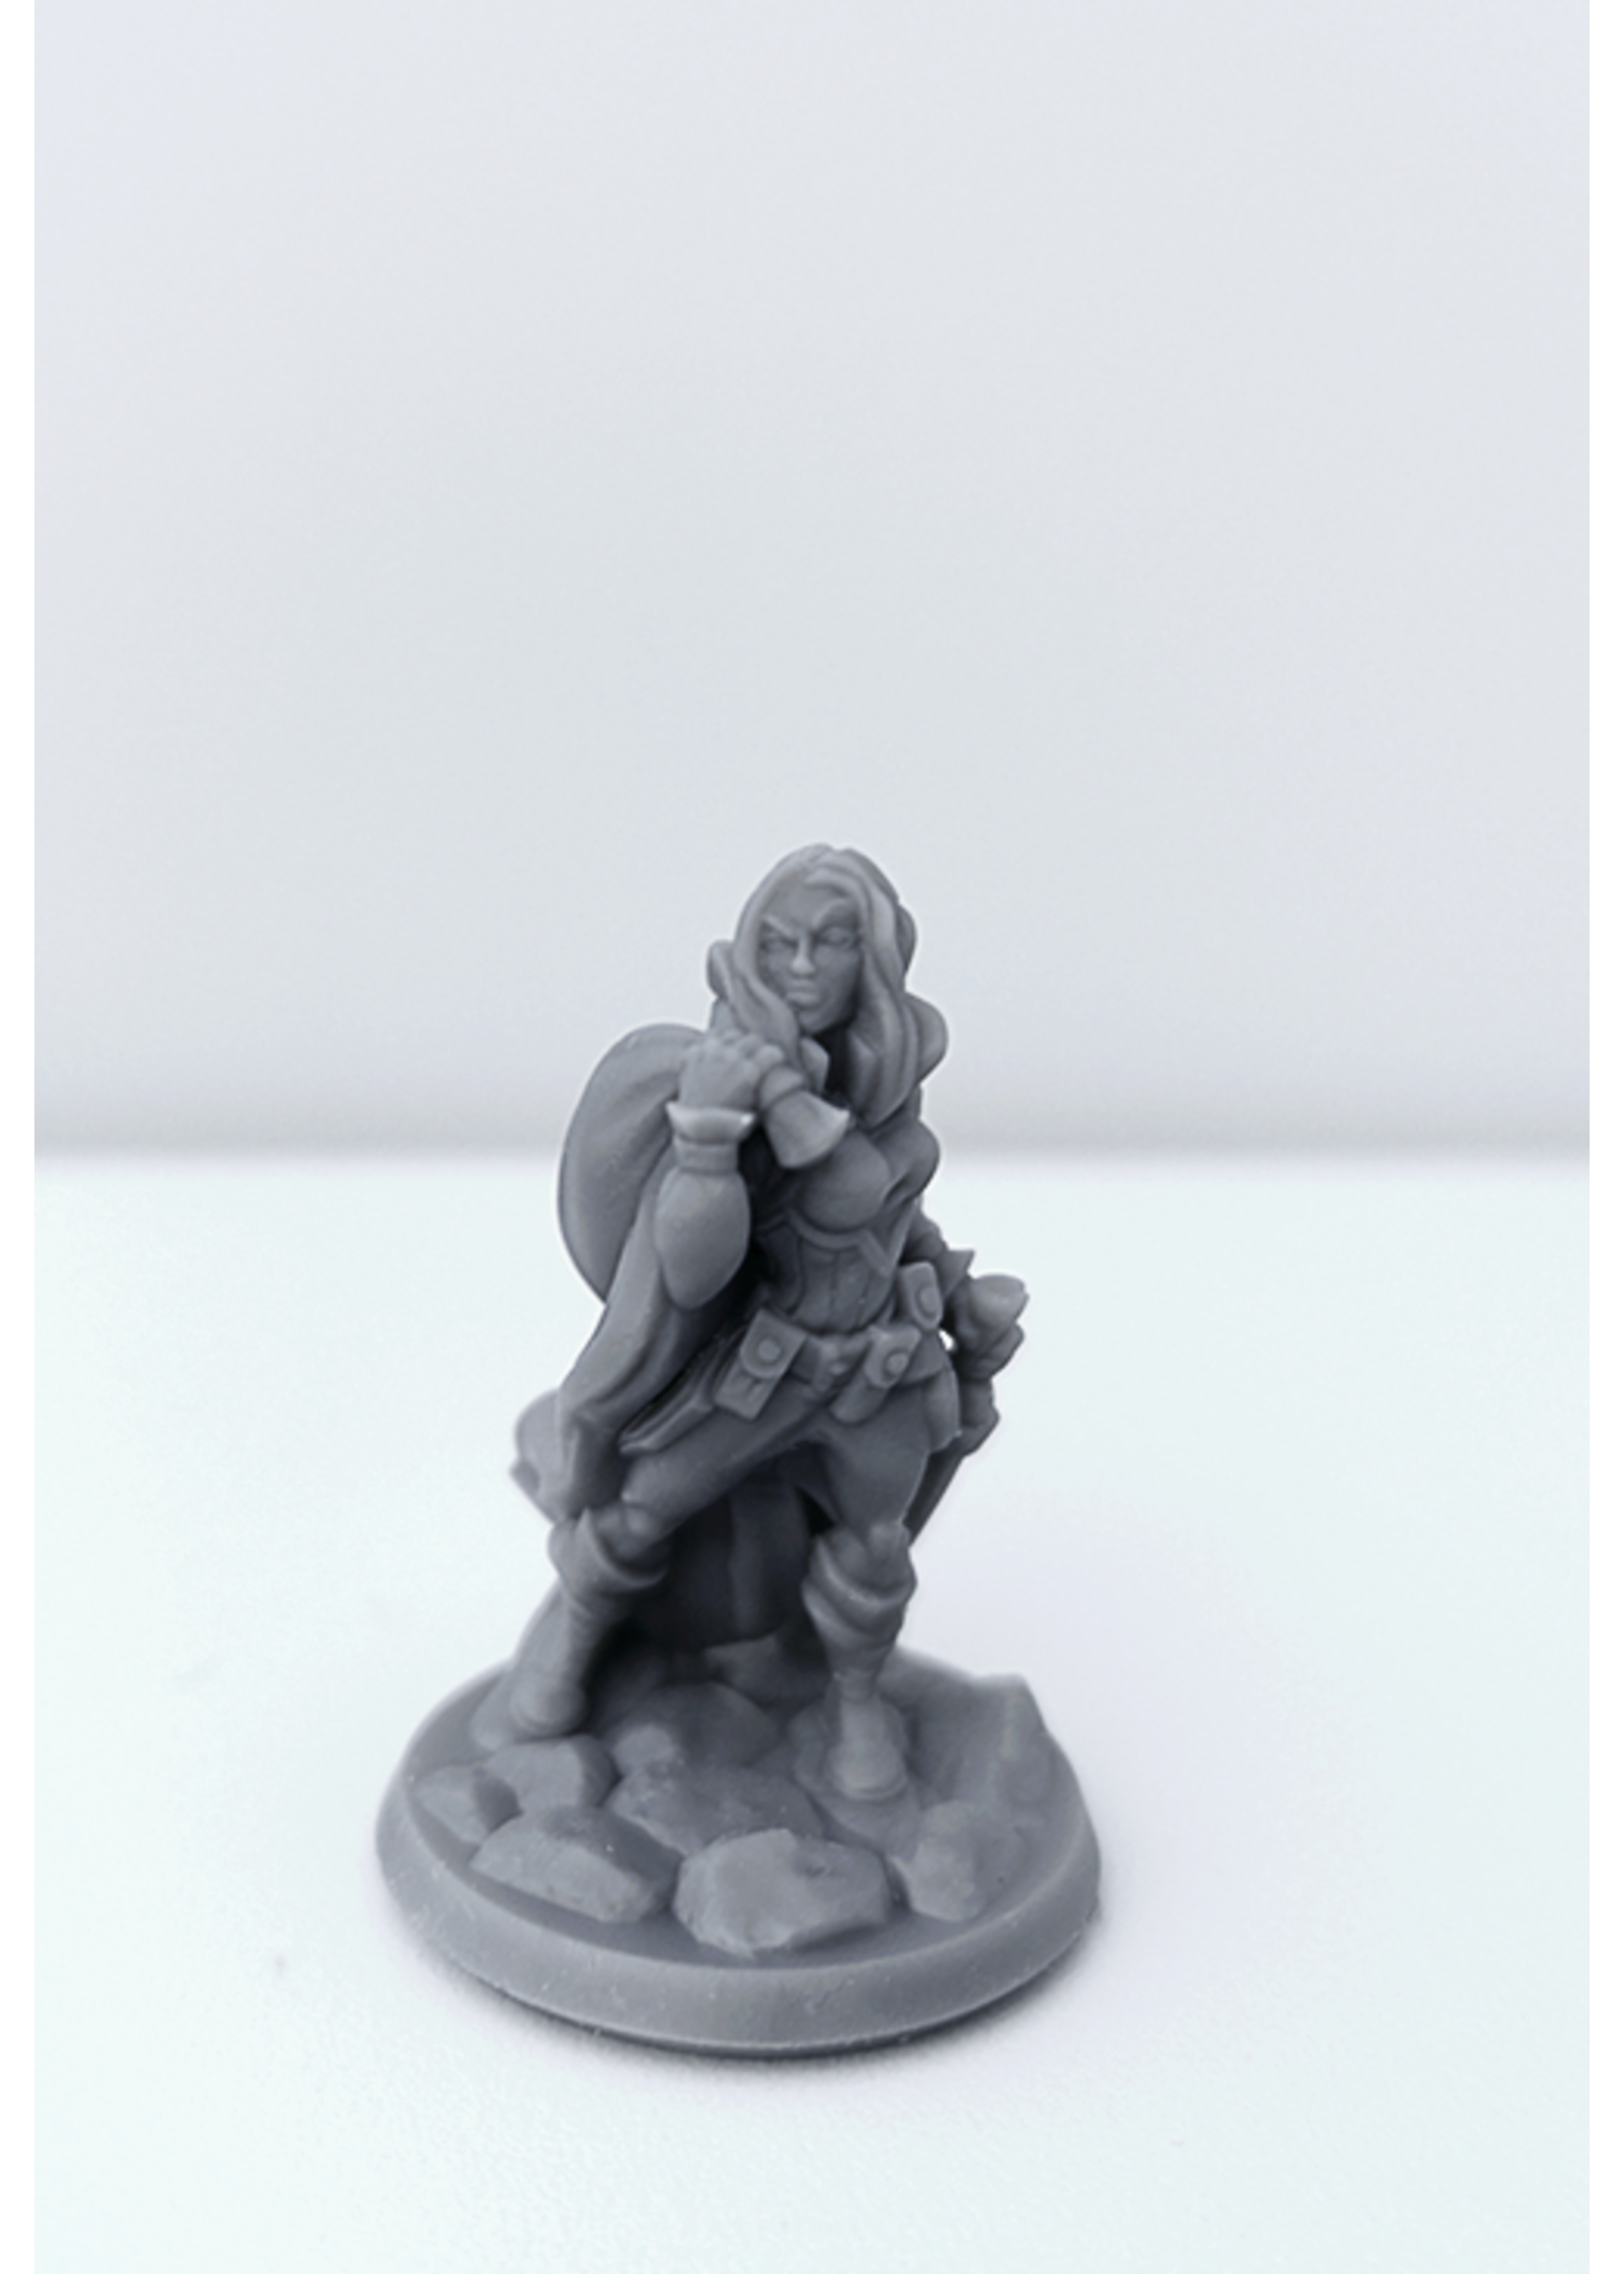 3D Printed Miniature - Thief Female 02 - Dungeons & Dragons - Hero of the Realm KS